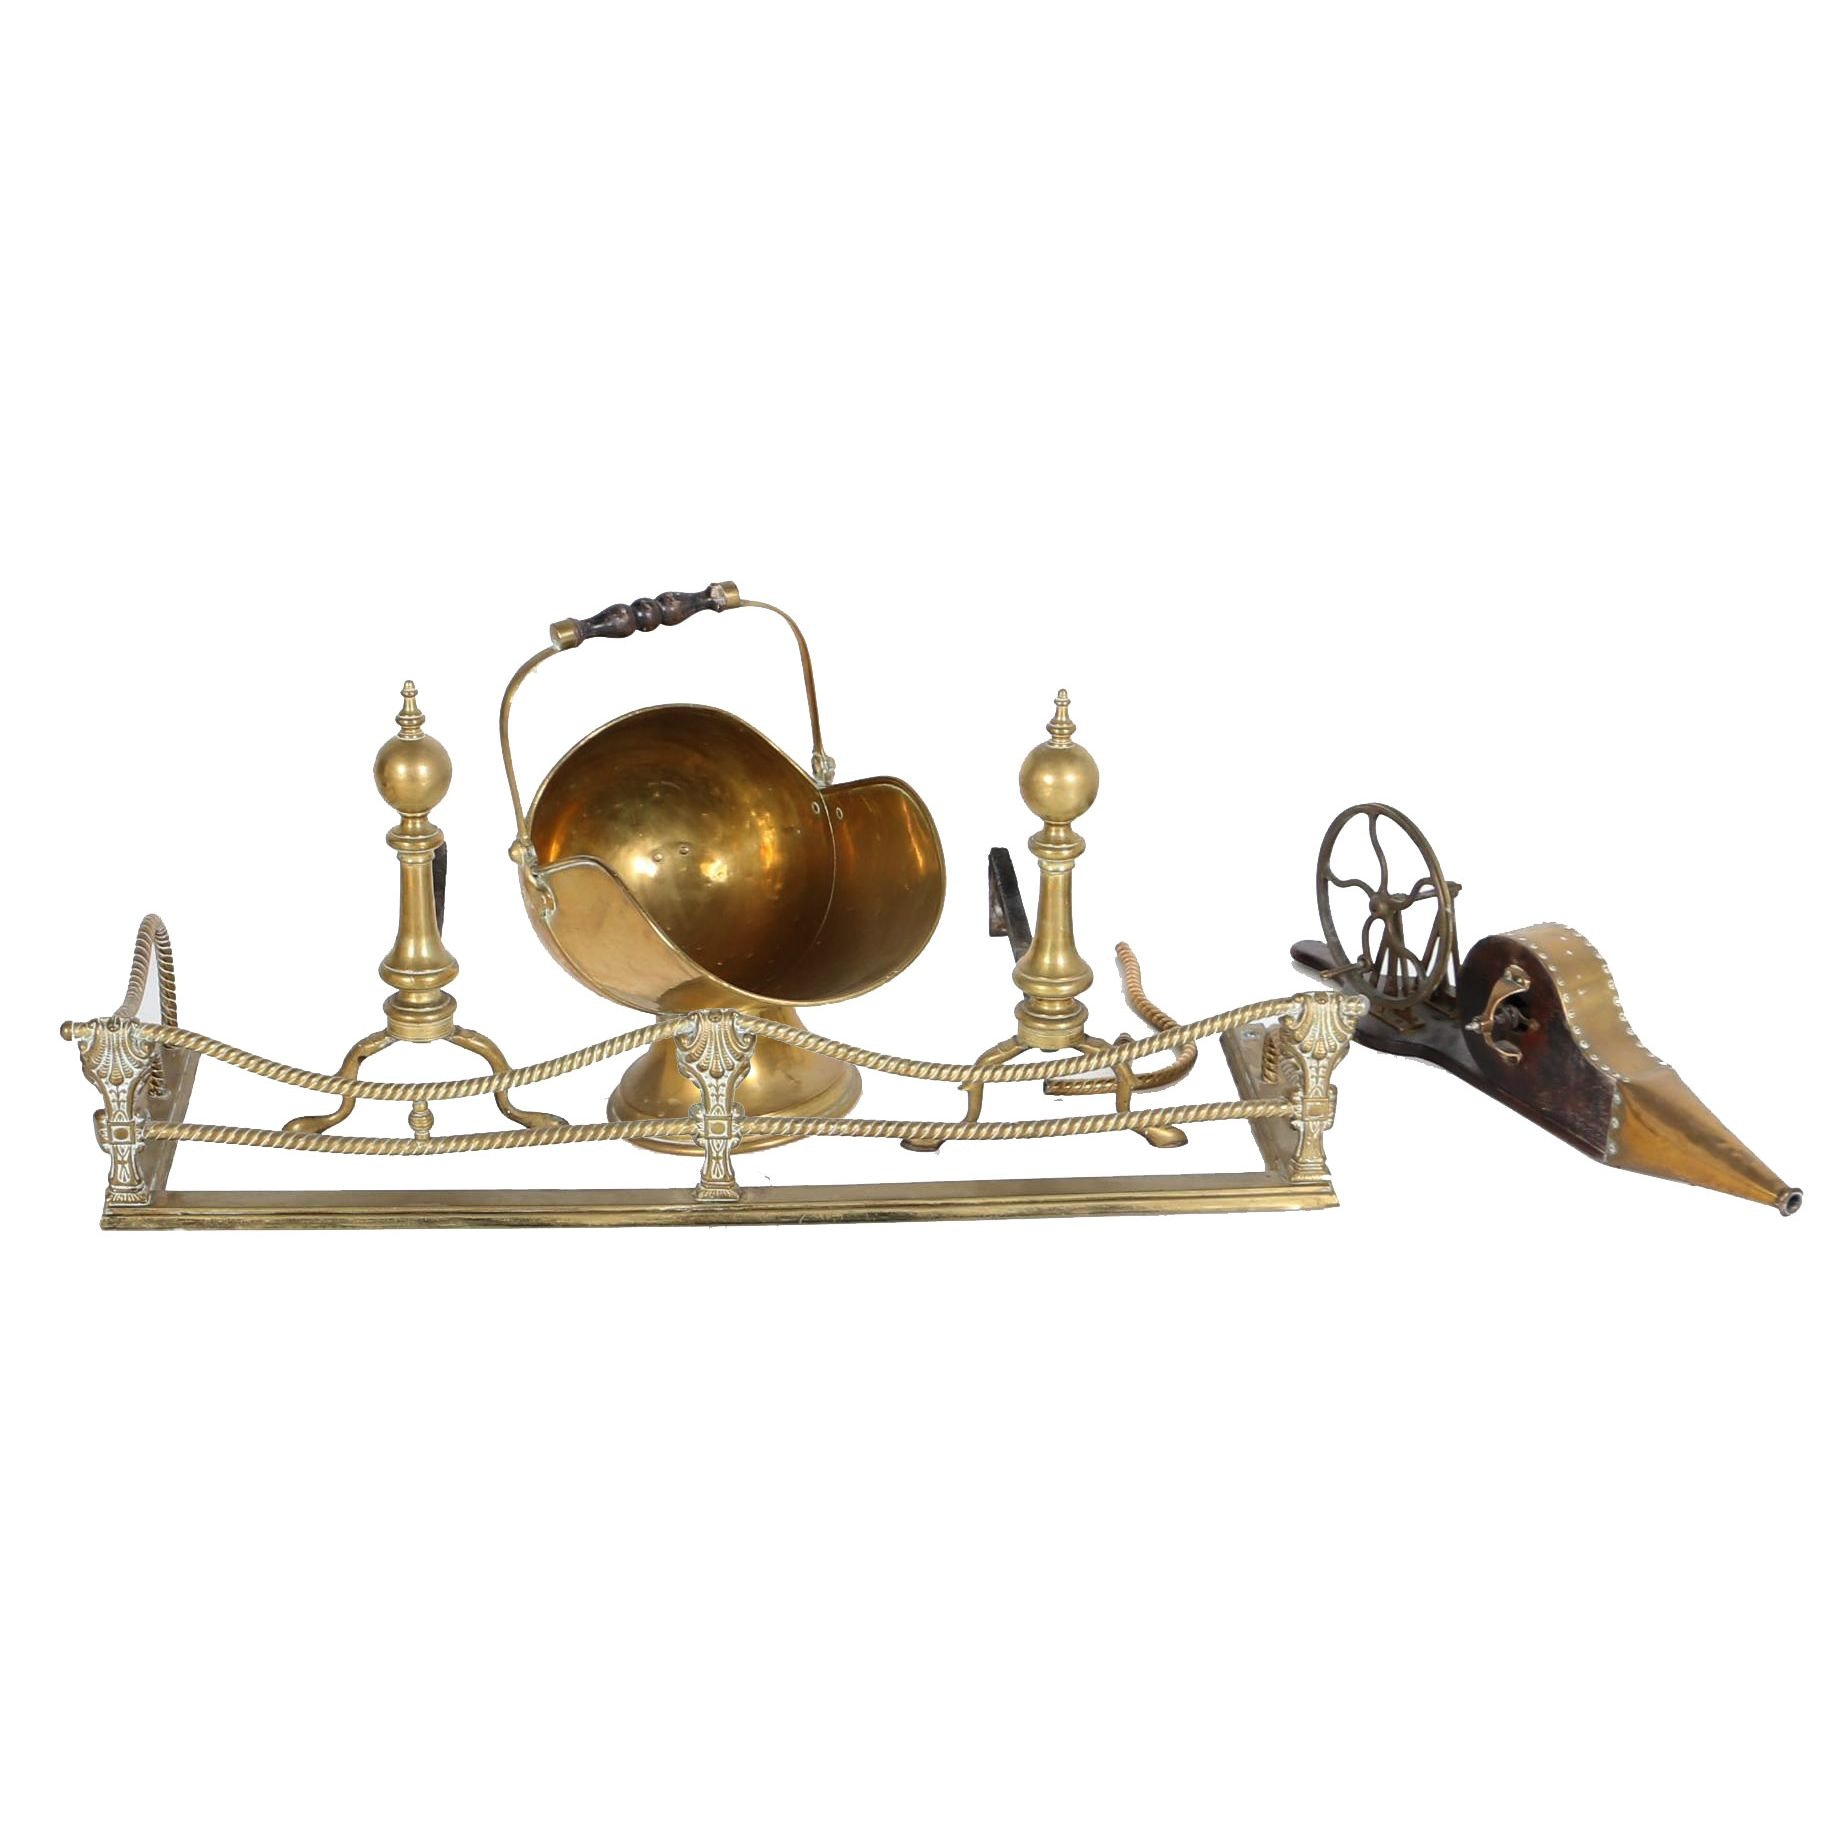 Group of Brass Fireplace Accessories, 19th Century